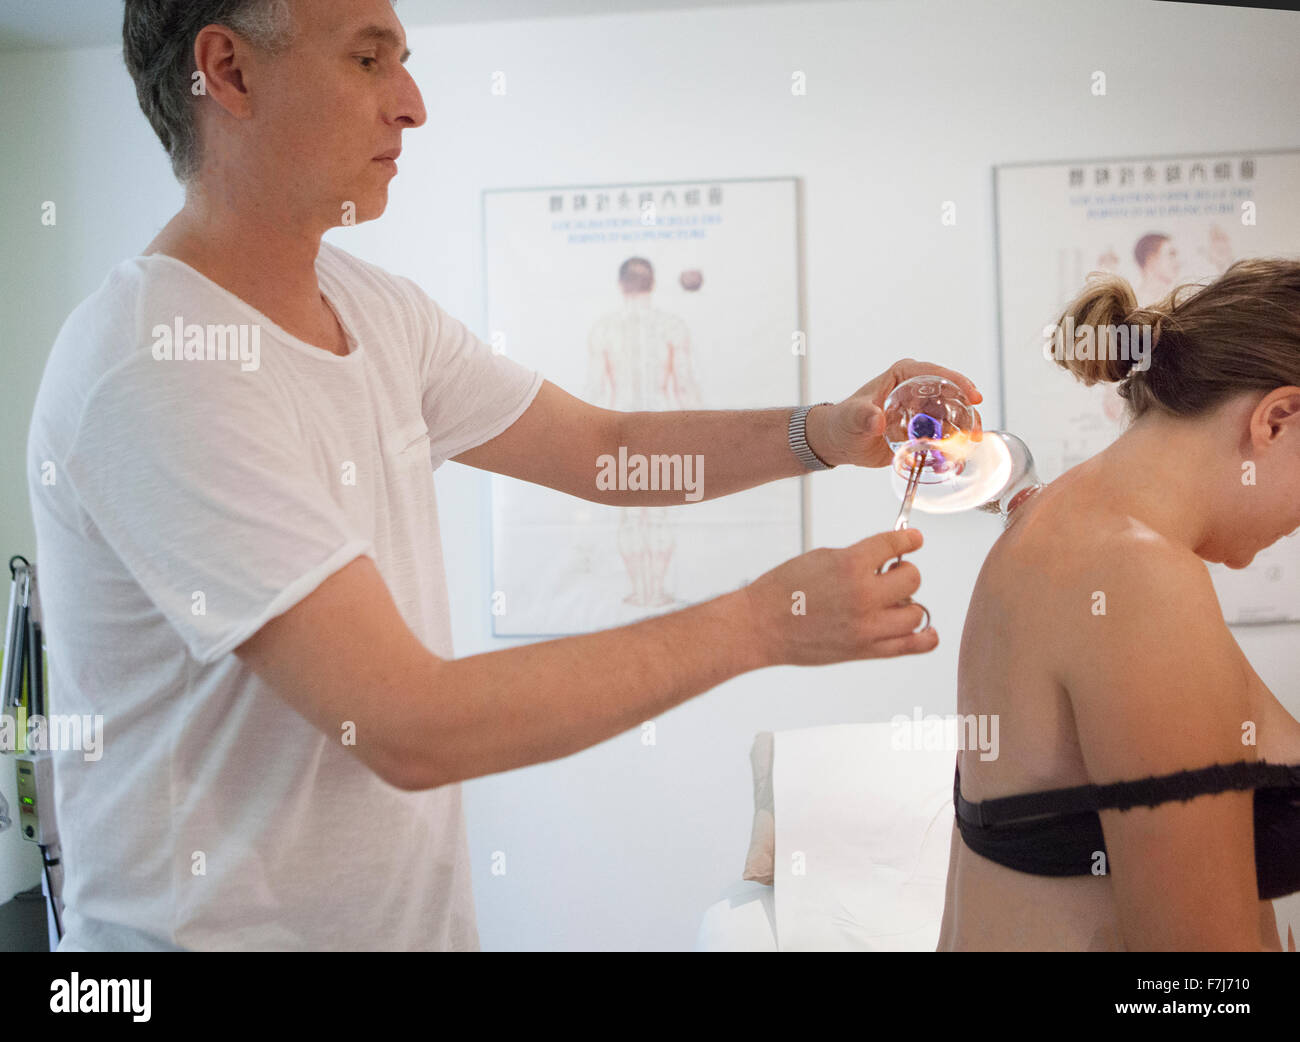 Reportage on a therapist who specialises in traditional Chinese medicine. Applying cupping-glasses massages connective - Stock Image